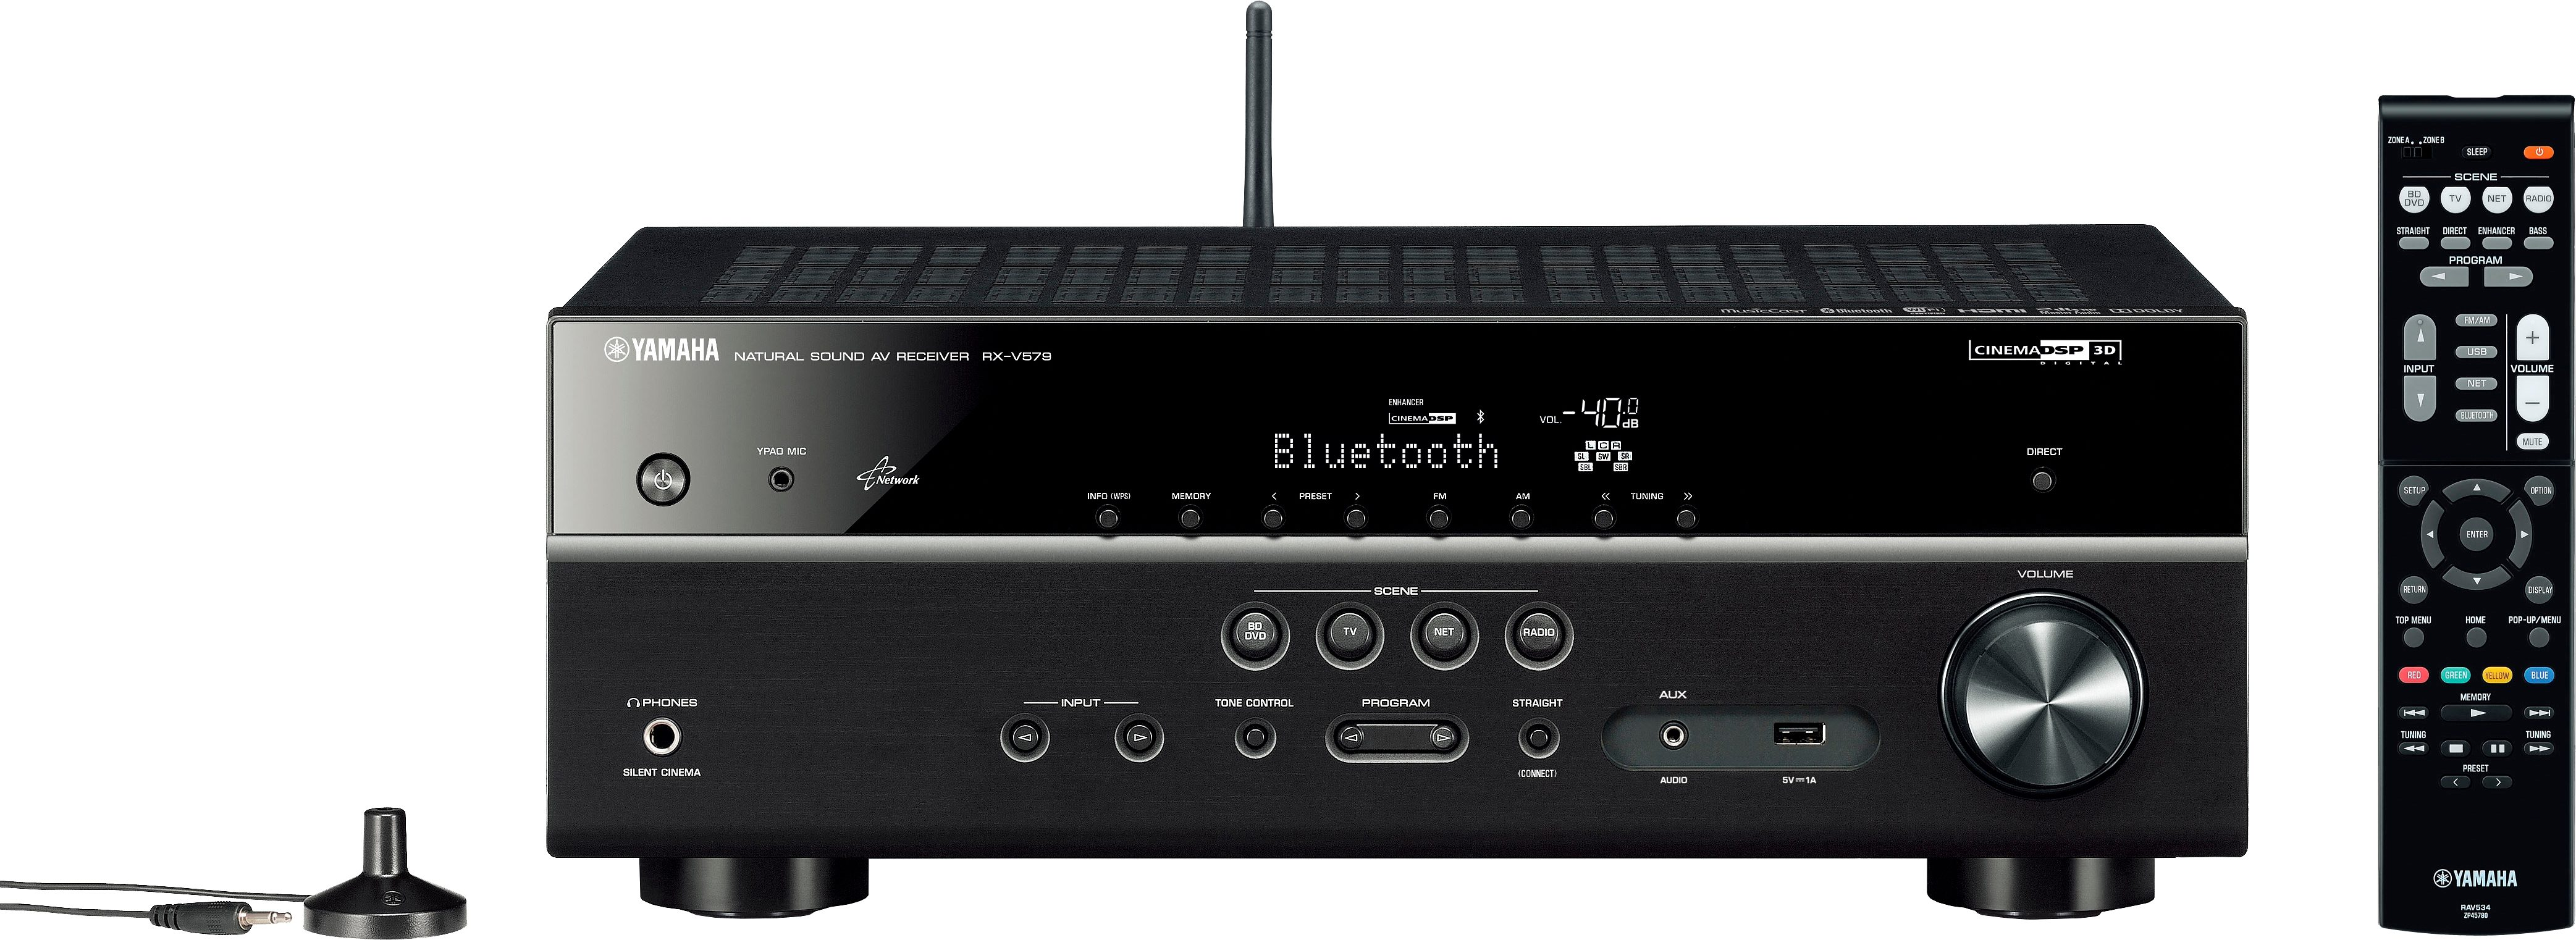 Yamaha RX-V579 7.2 AV-Receiver (Hi-Res, 3D, Spotify Connect, Airplay, WLAN, Bluetooth)